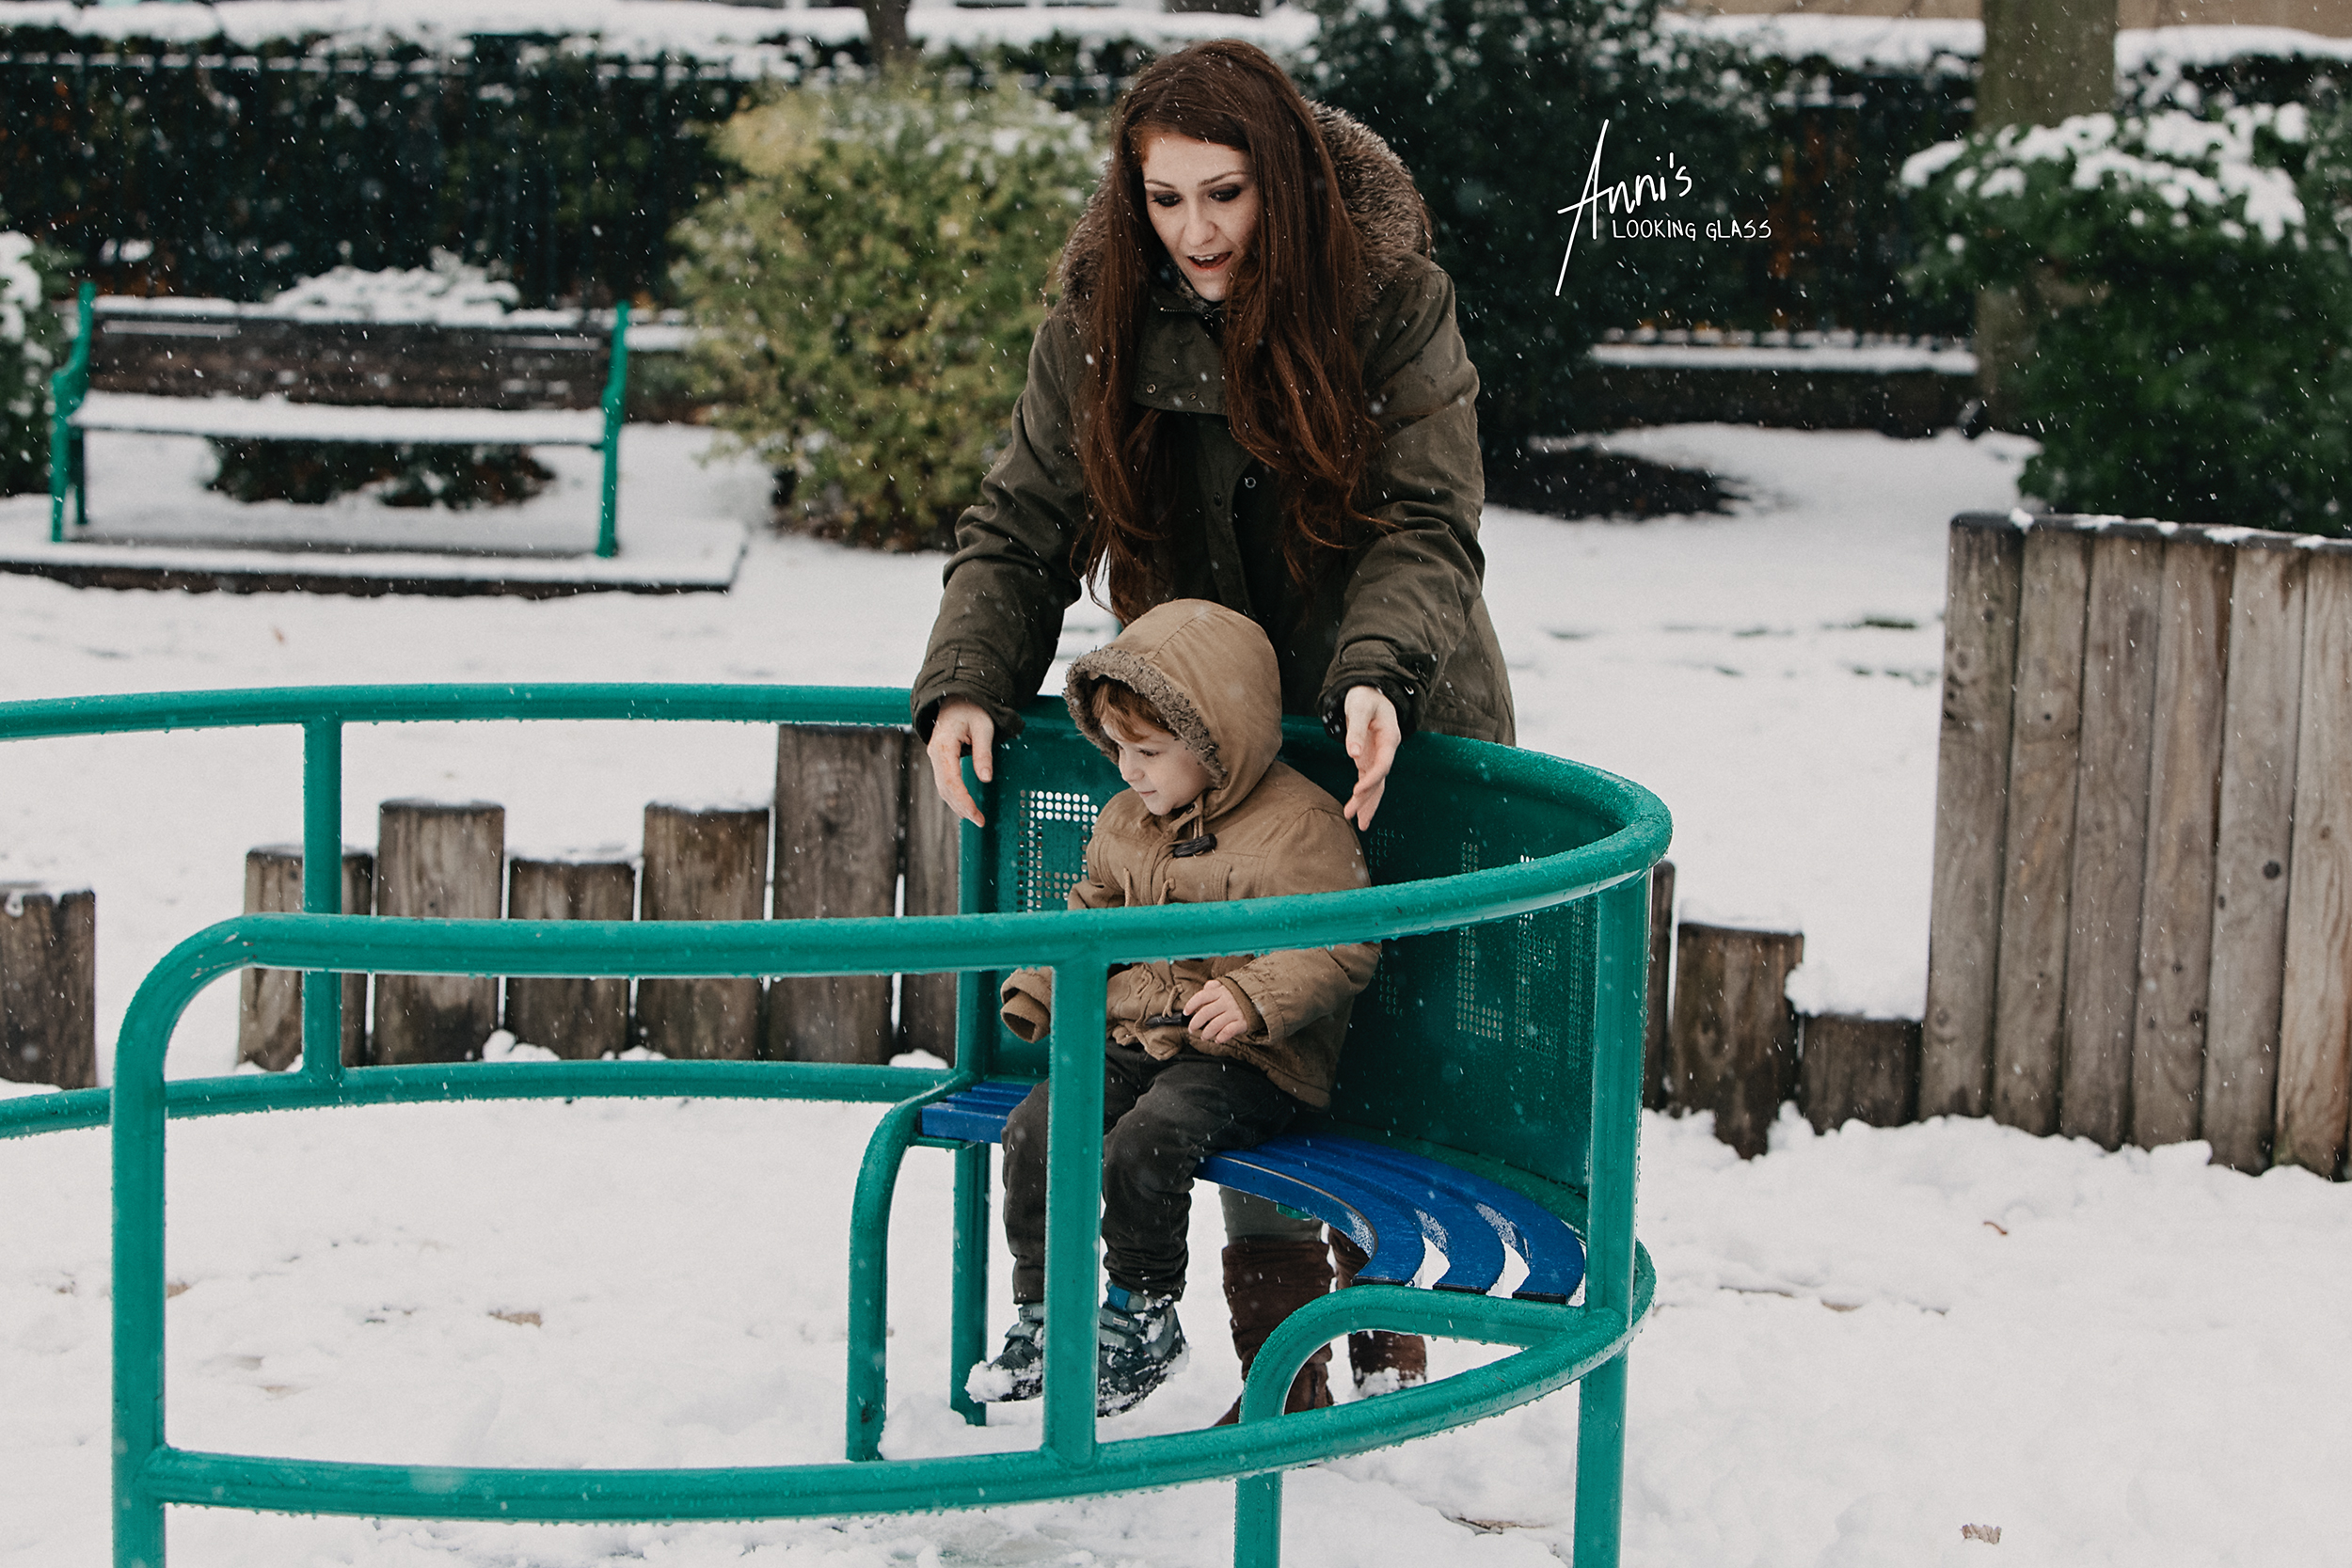 A mother spins her young son on a roundabout in the middle of a snowy playground